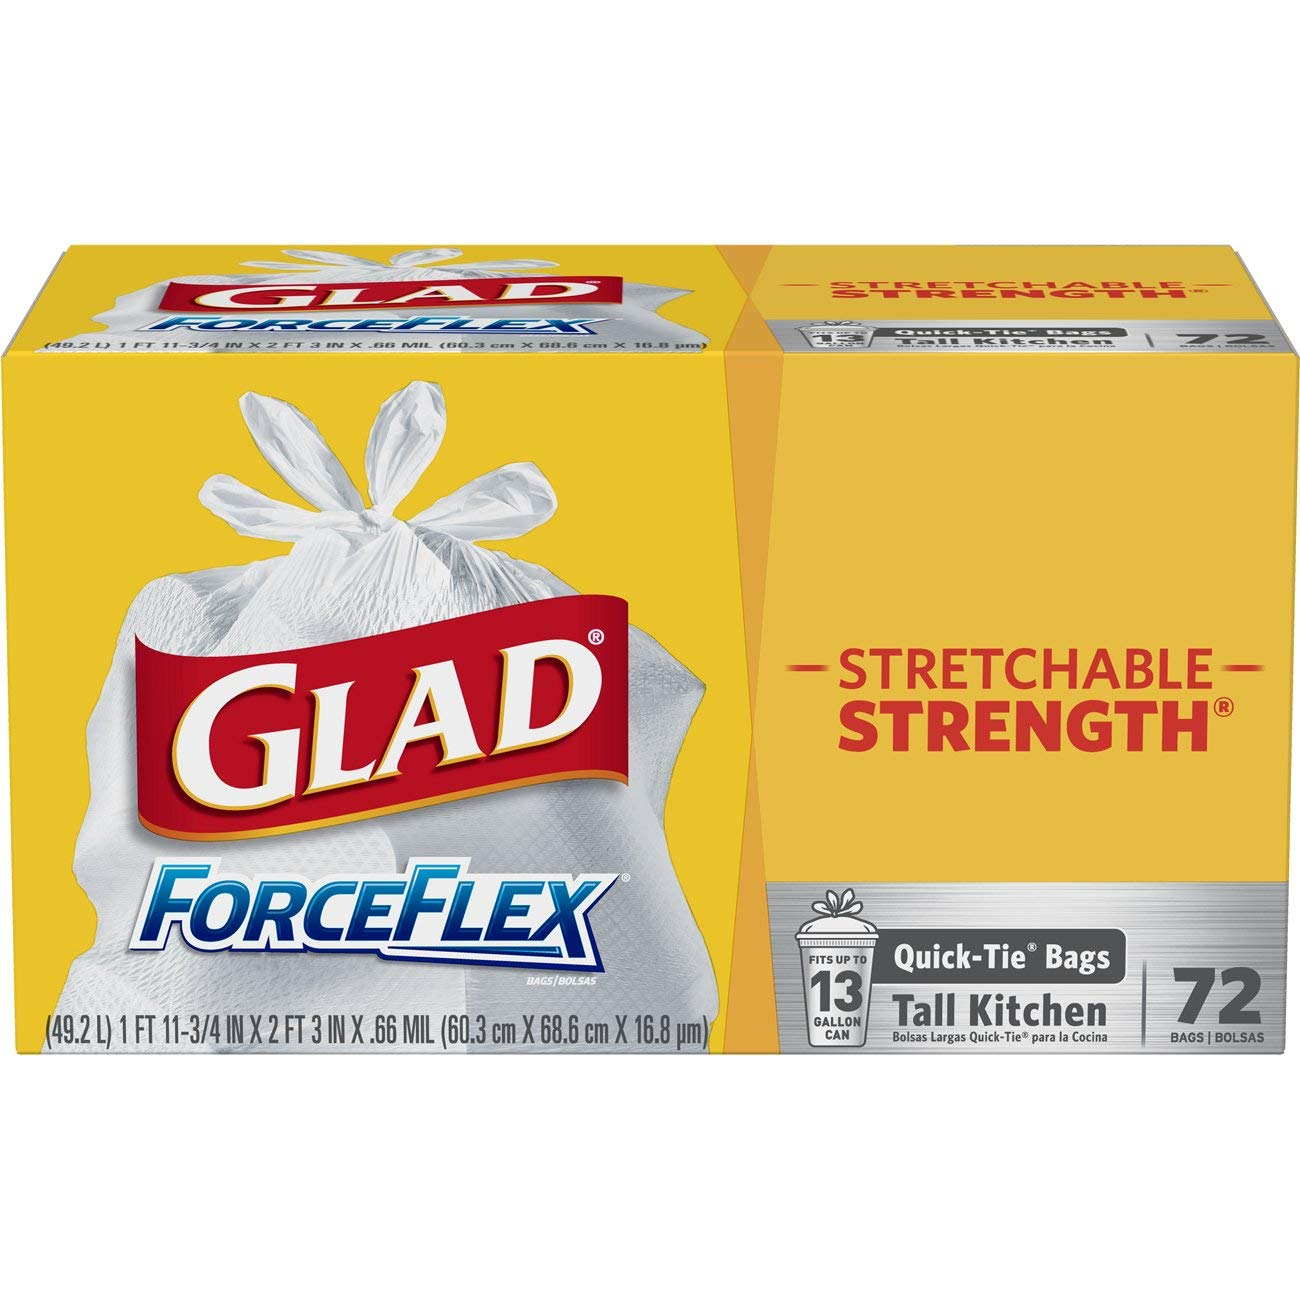 Glad Tall Kitchen Quick-Tie Trash Bags – ForceFlex 13 Gallon White Trash Bag, Unscented - 72 Count